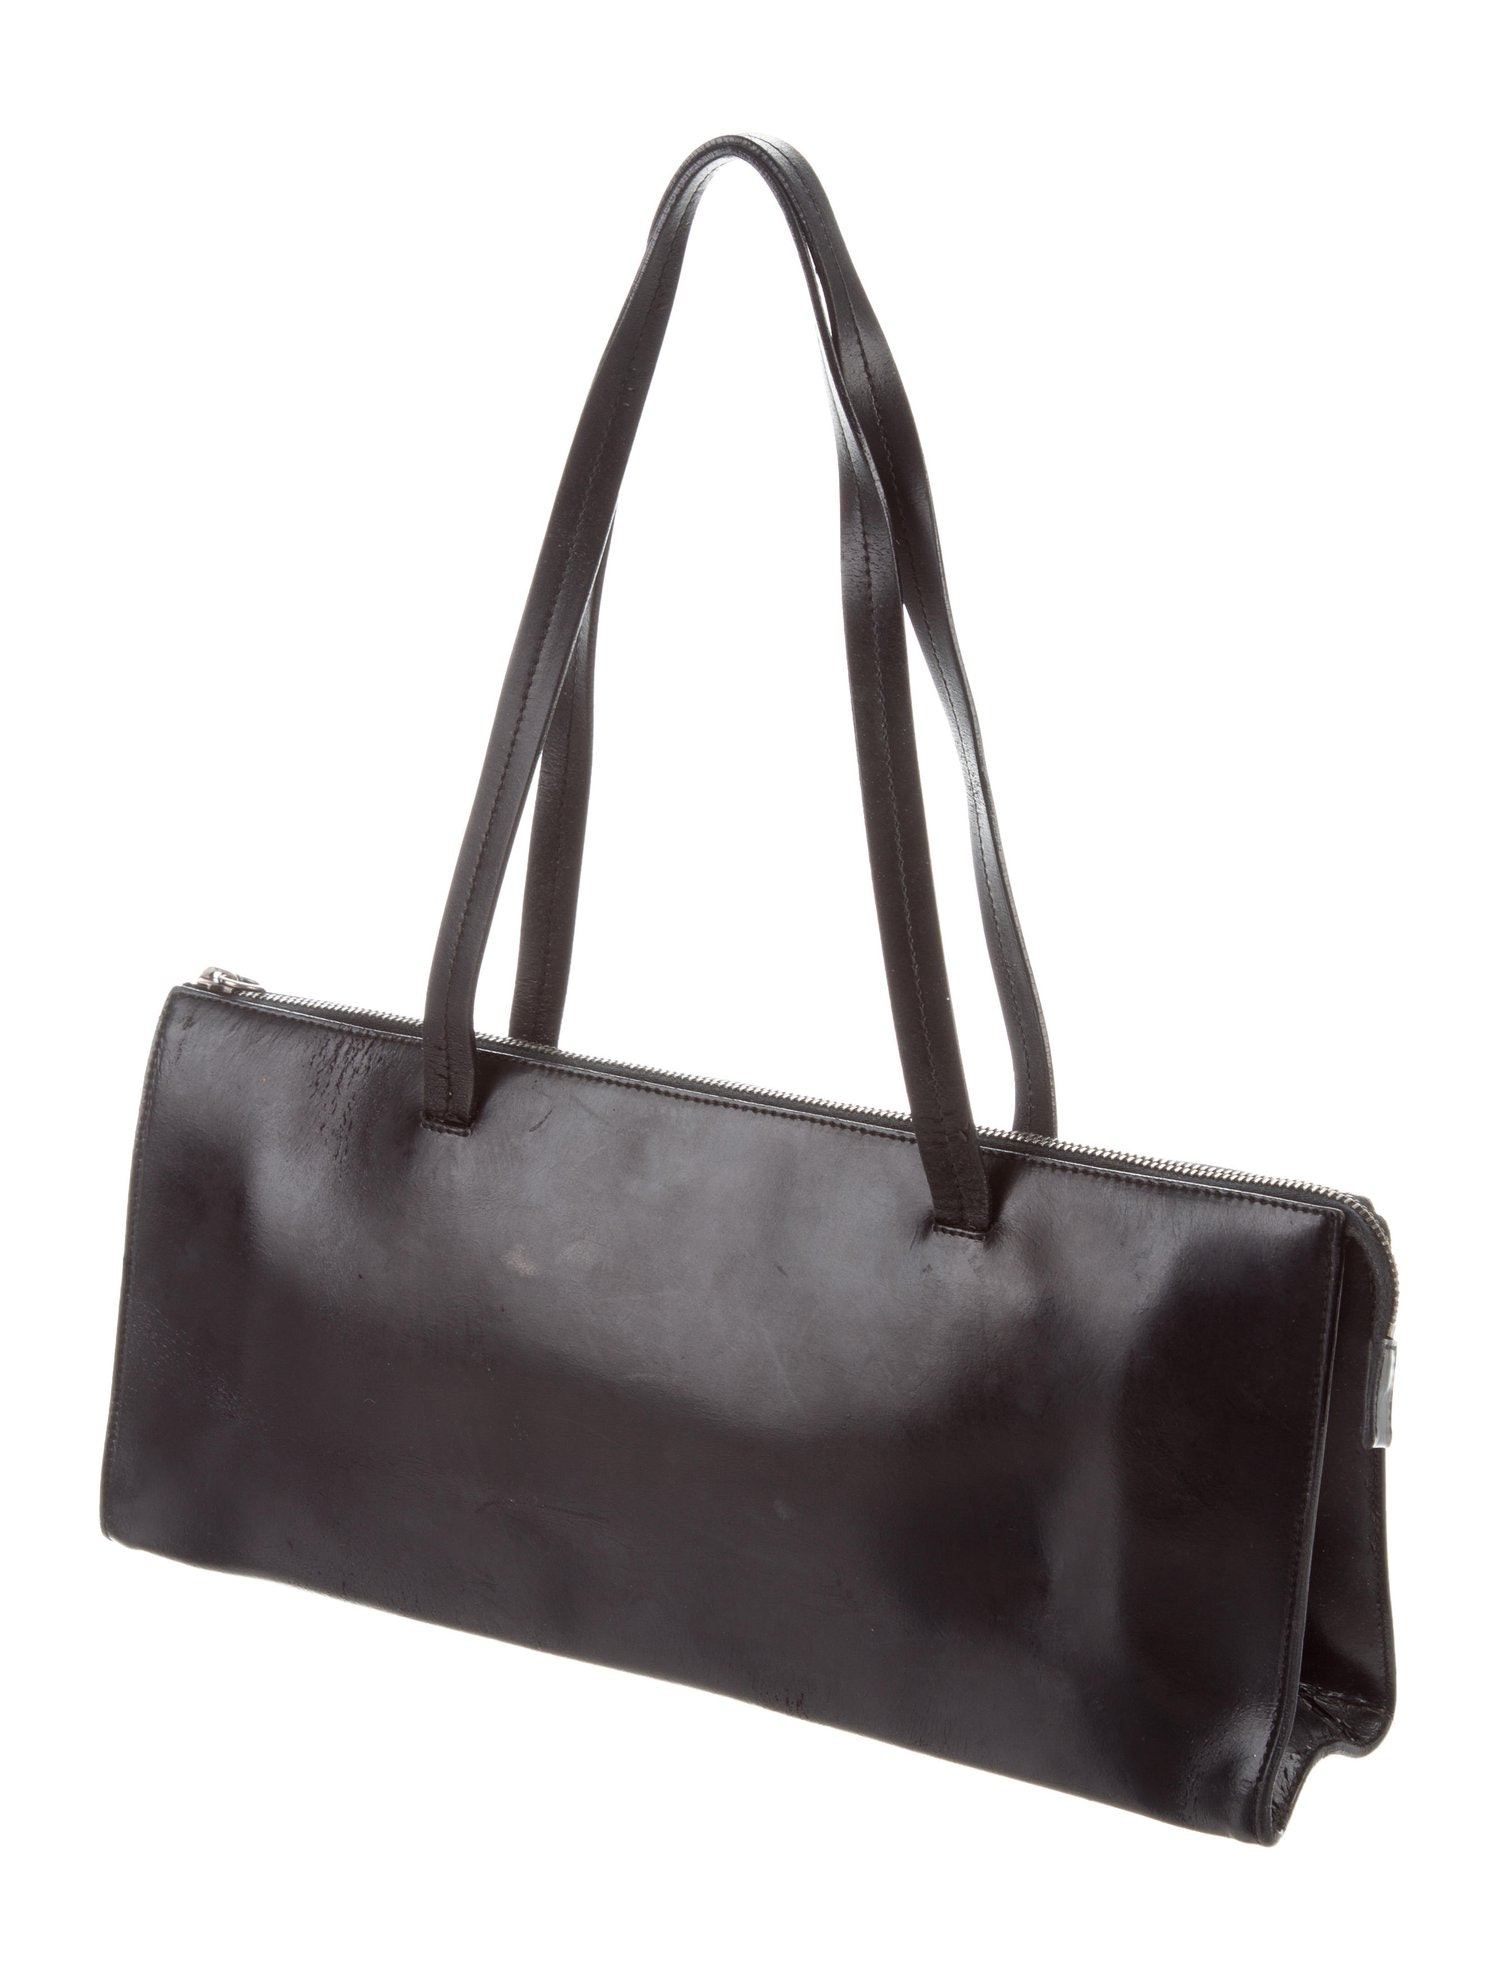 14 Cheap Baguette Purses Under  100 At The RealReal To Throw In Your Cart 149933e7351ef